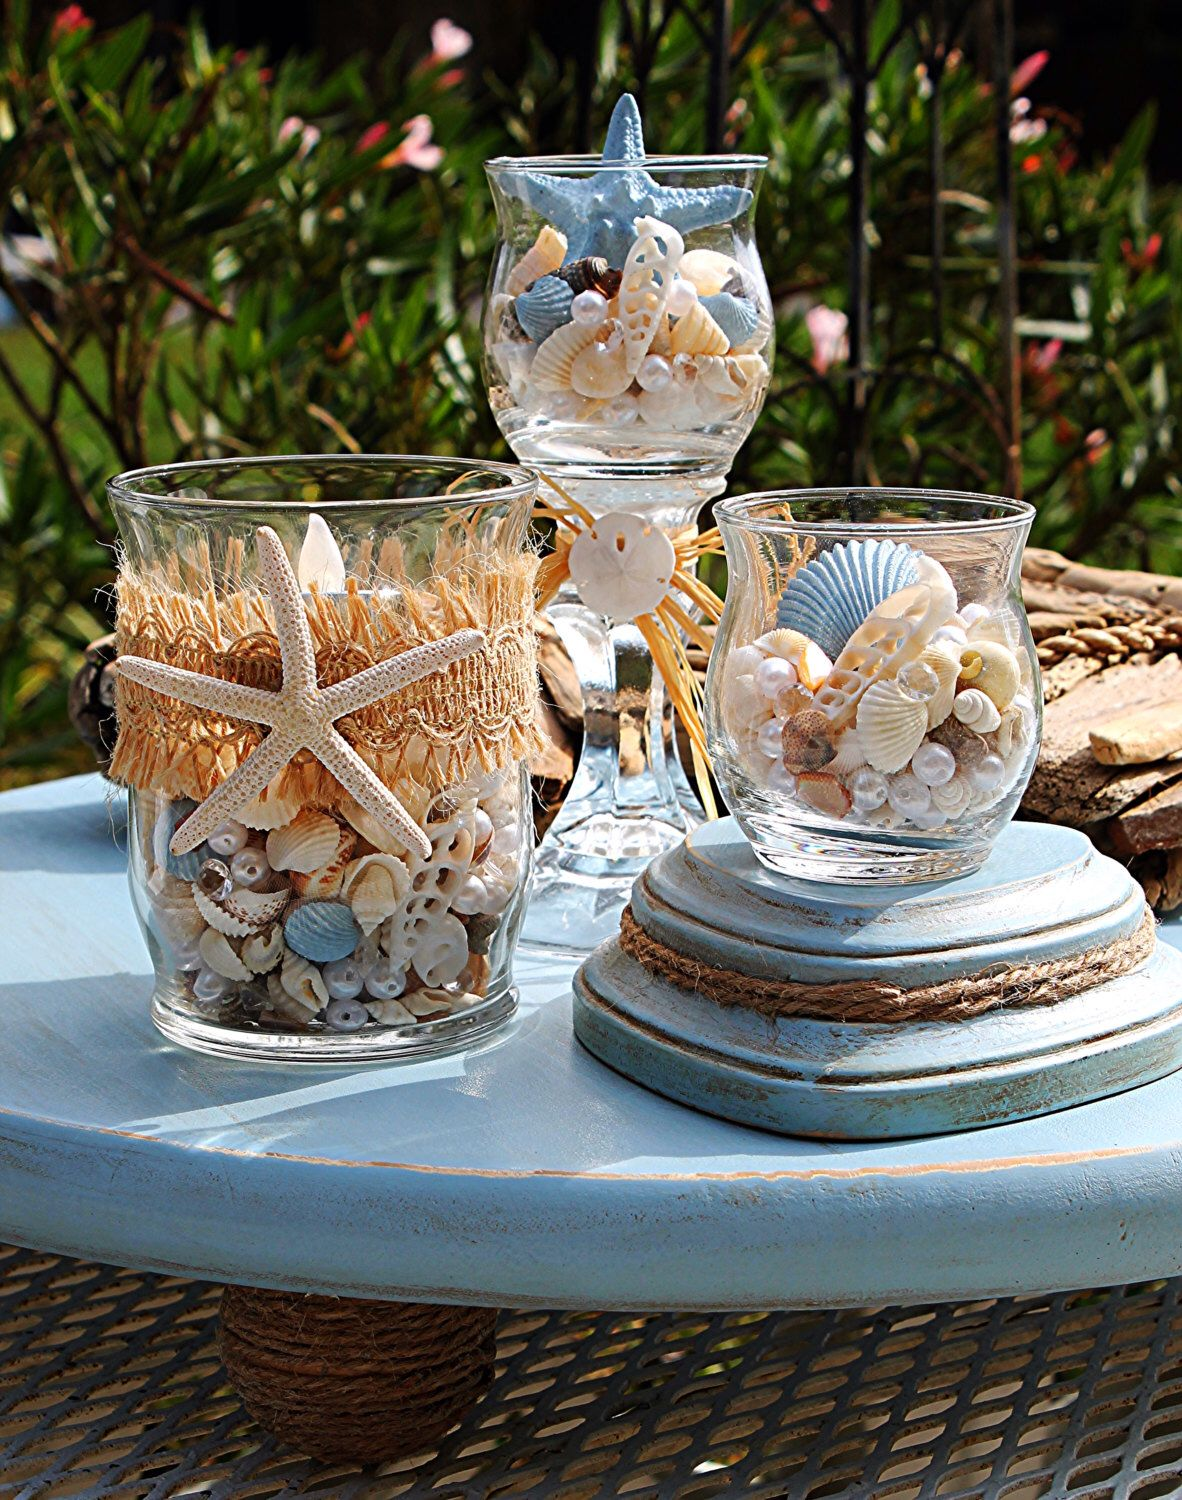 Wedding decoration ideas at the beach  Beach Wedding CenterpieceBeach Wedding DecorNautical Wedding